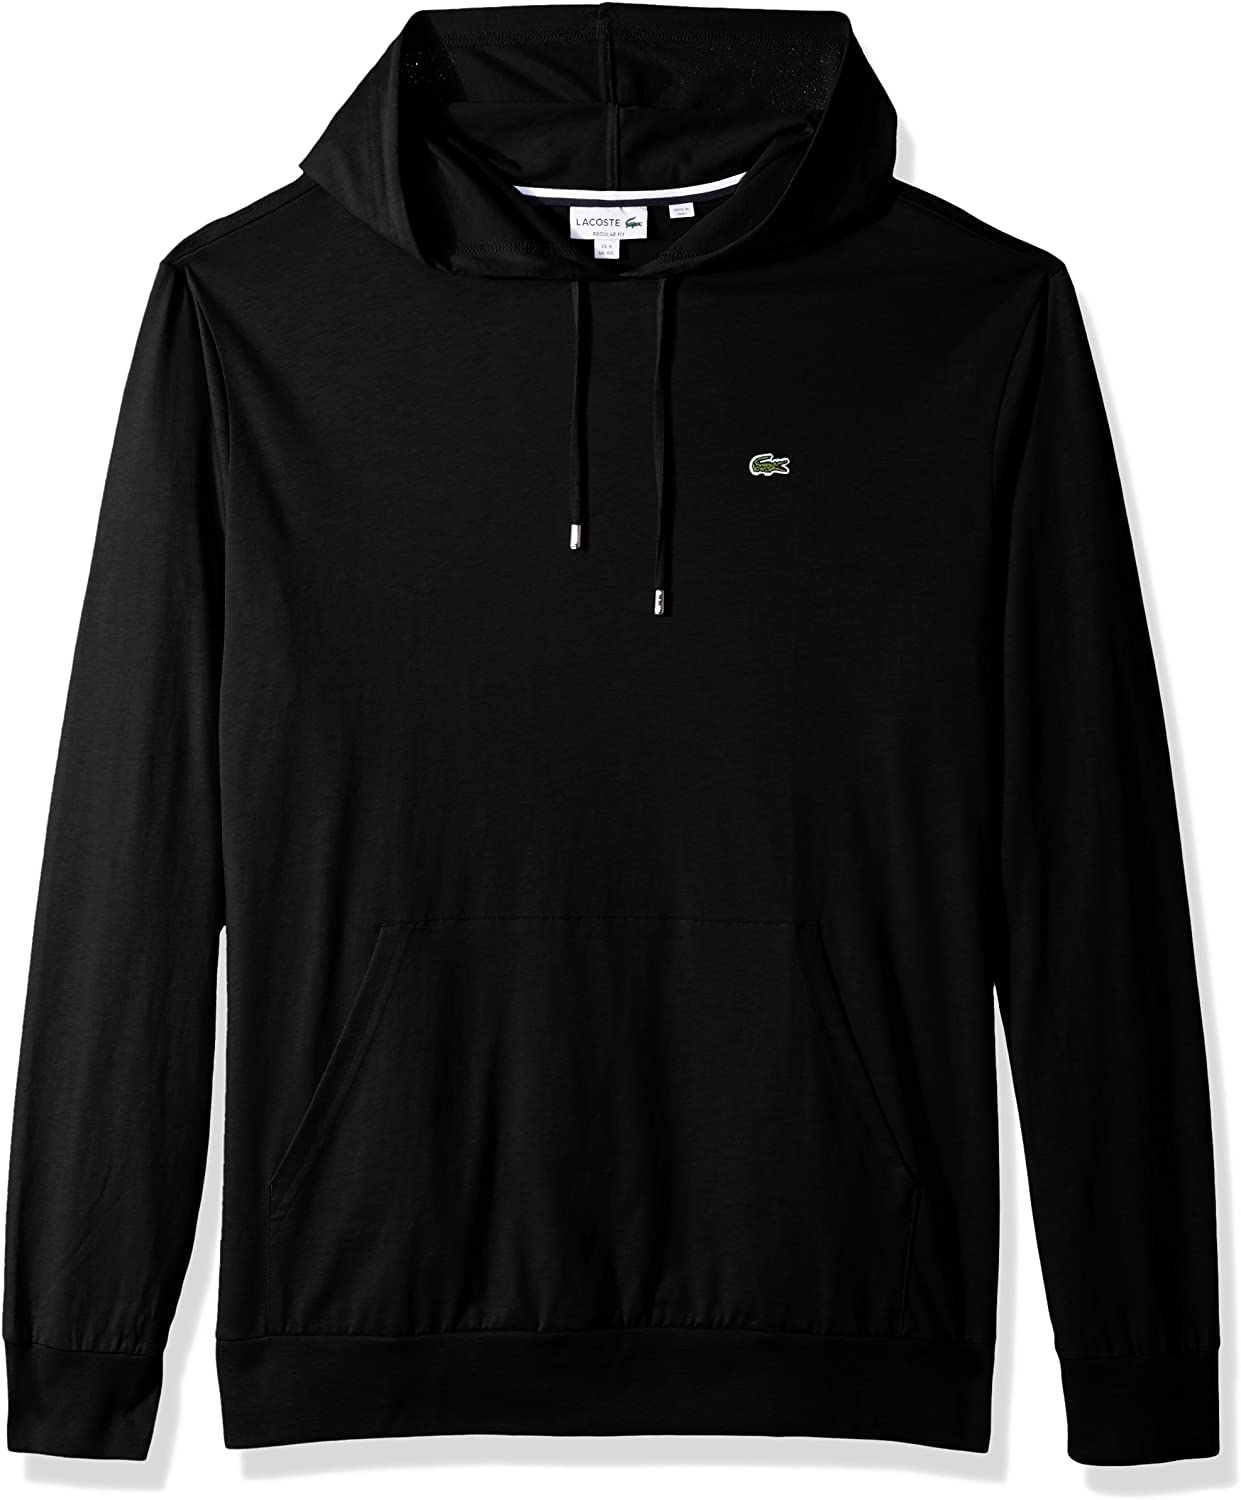 Lacoste Mens Long Sleeve Hooded Jersey Cotton T-Shirt Hoodie